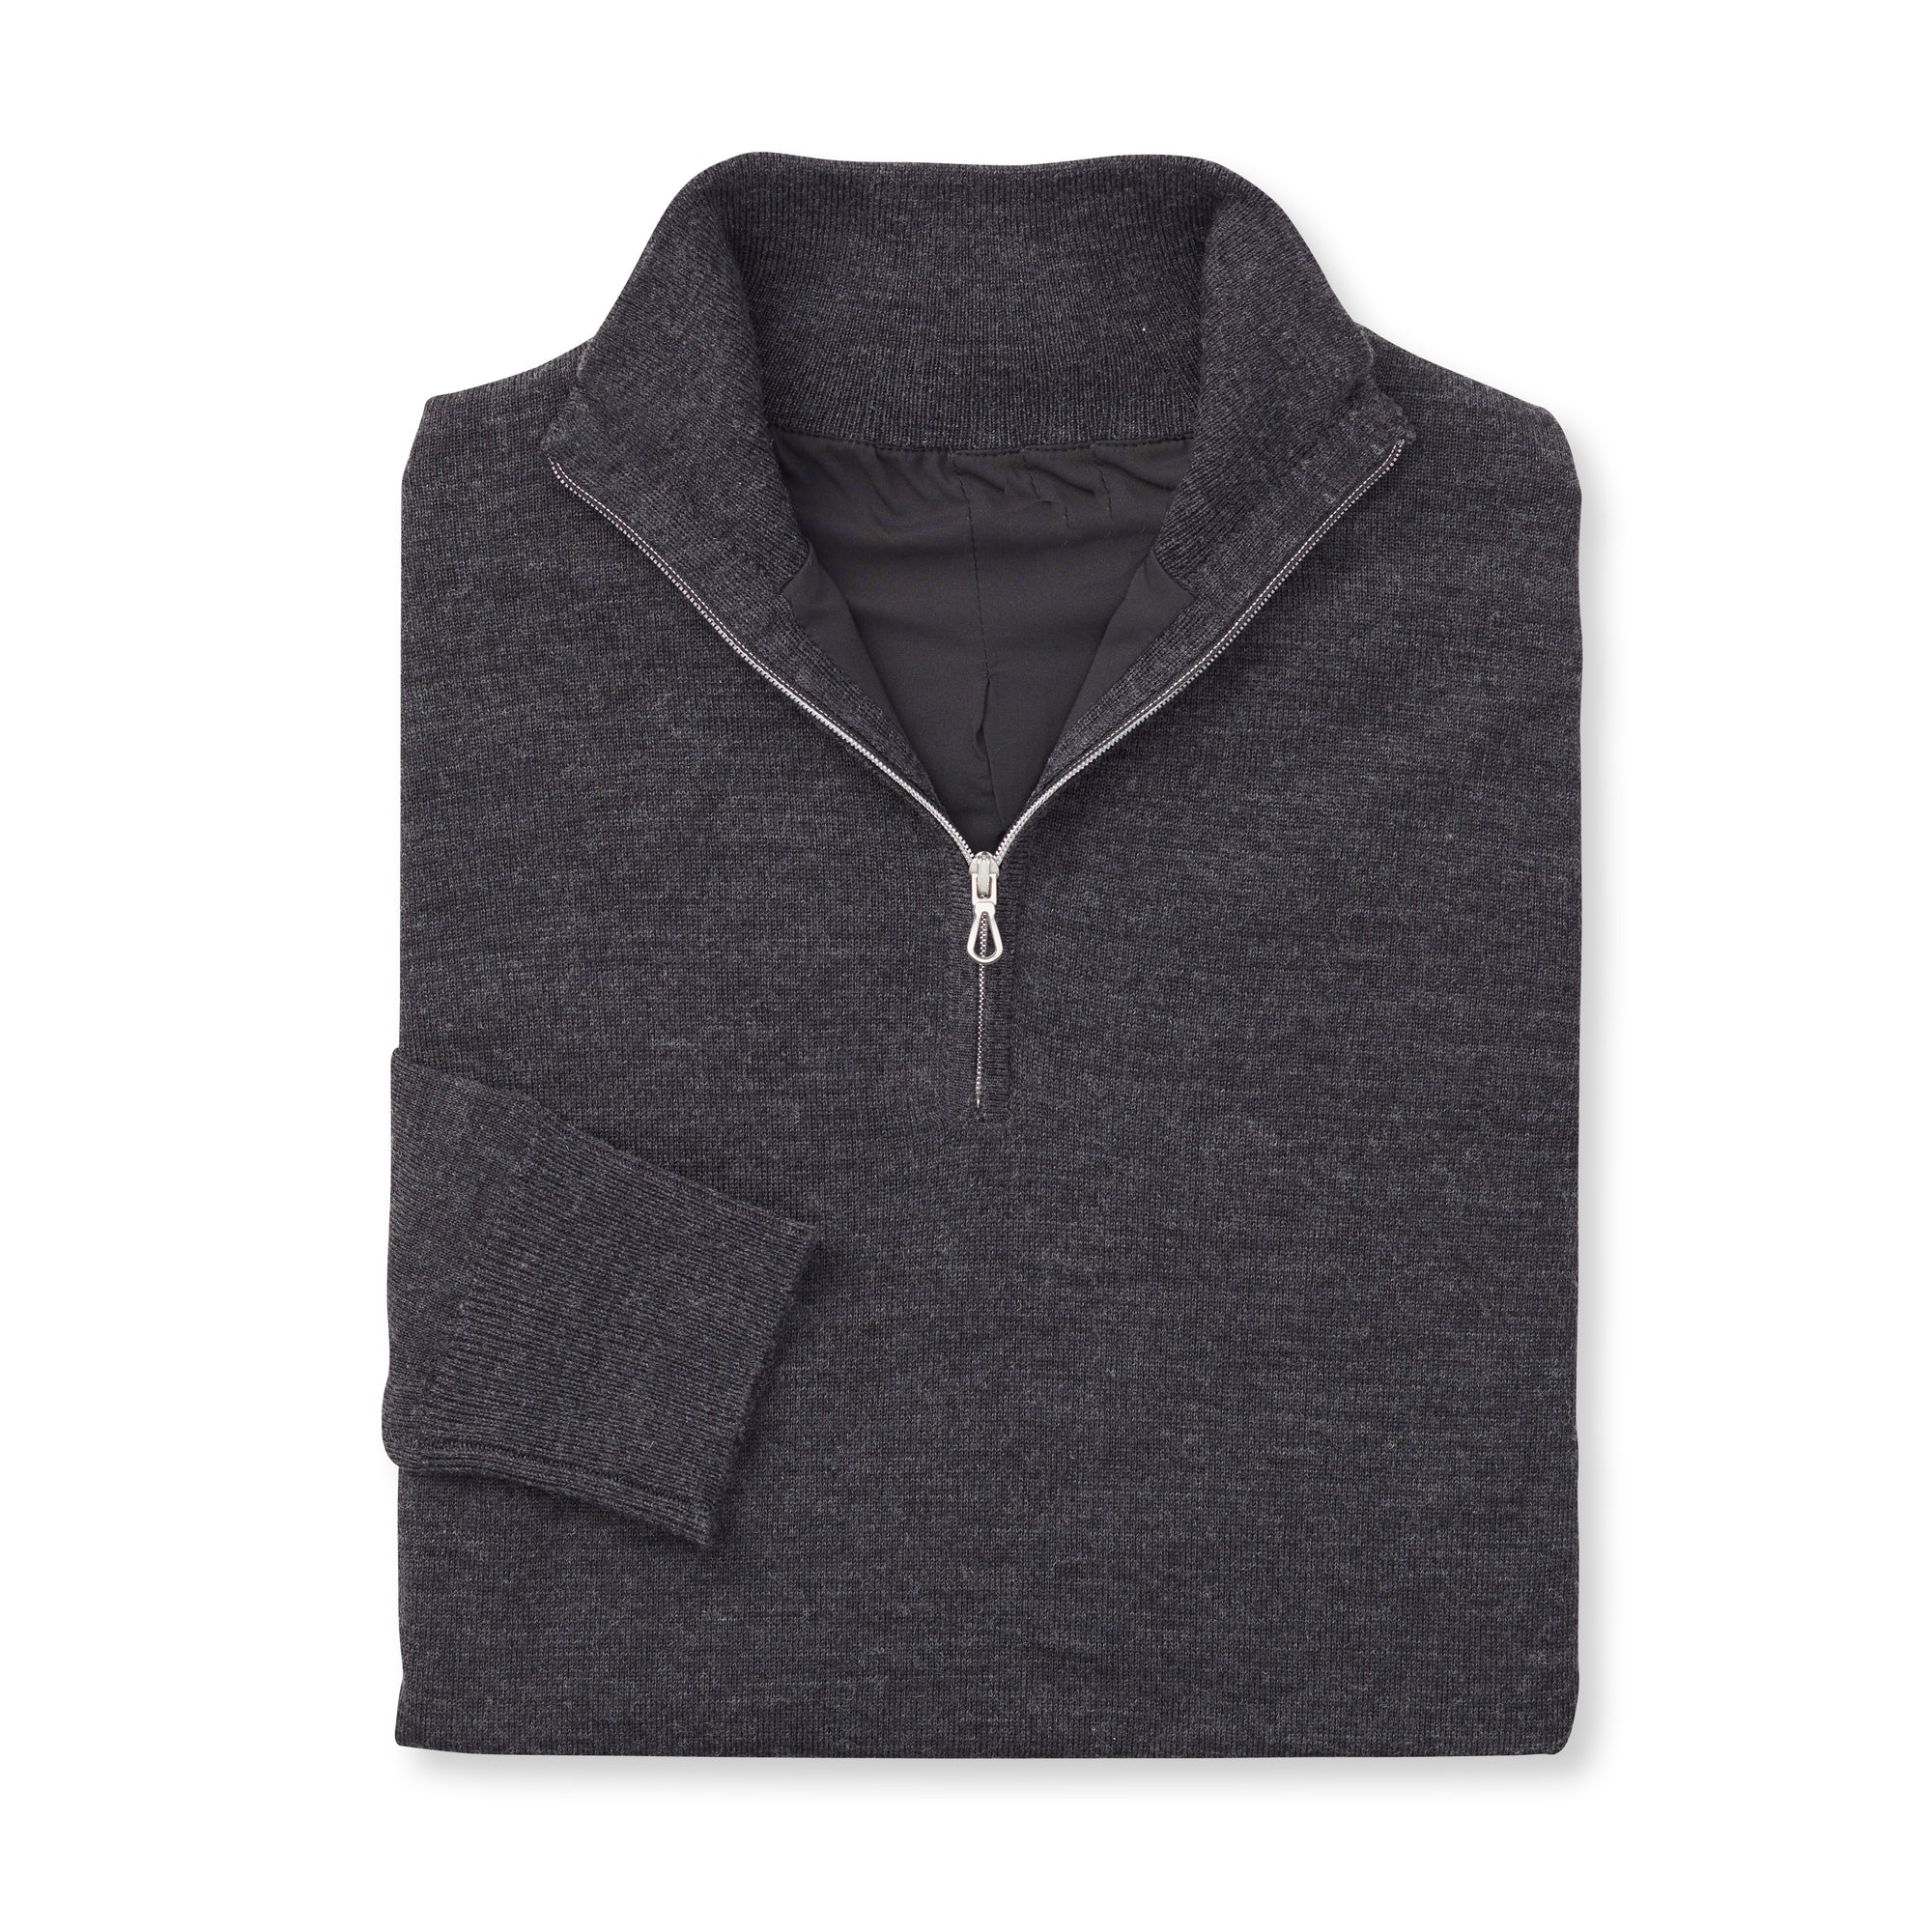 THE CHITOWN MERINO HALF ZIP PULLOVER - Black Heather IS75708HLS